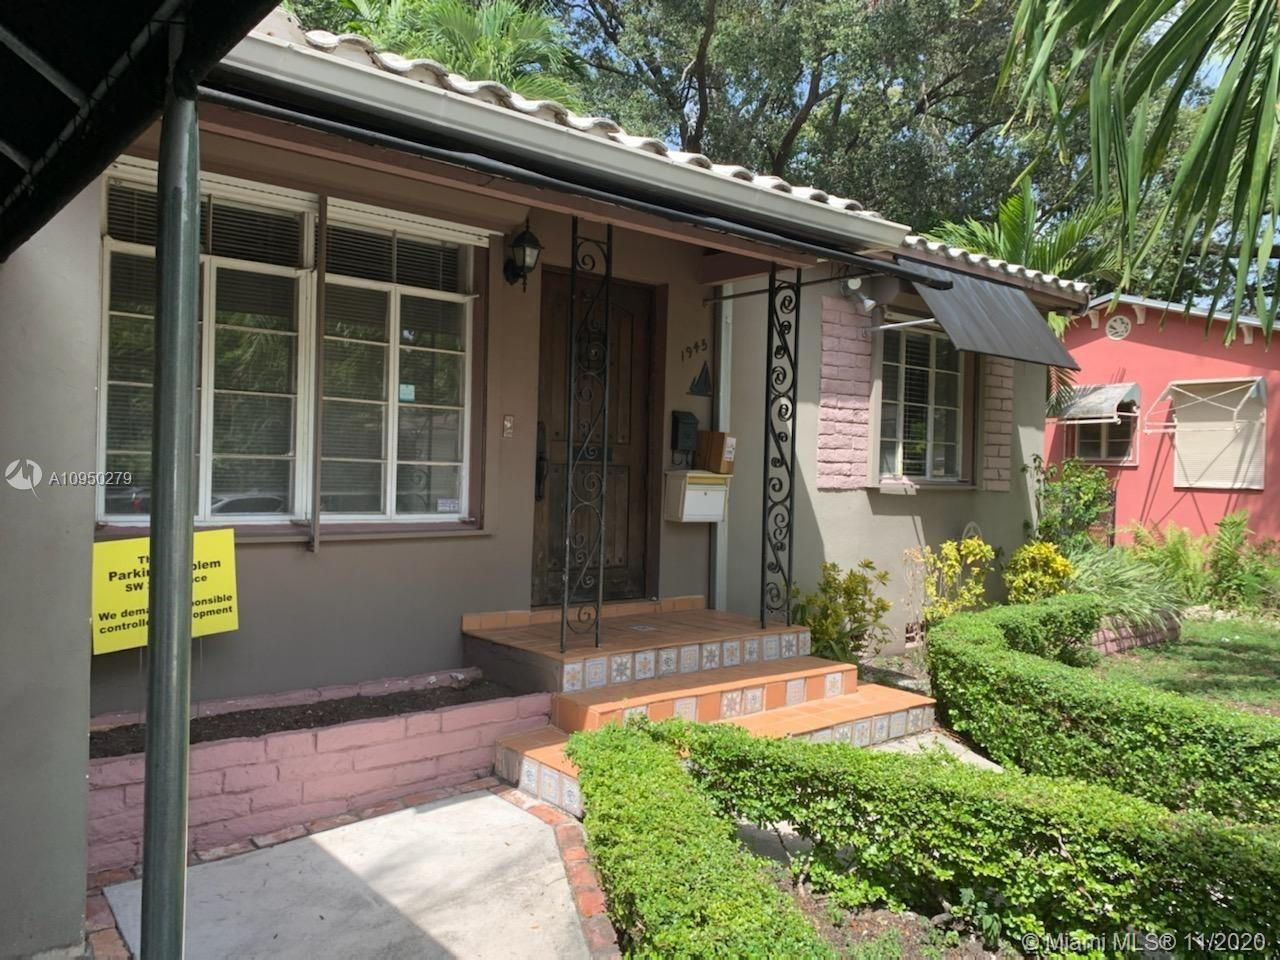 2/1 for sale in prime location in the Shenandoah – Silver Bluff area, enclose back courtyard. rilkaten shutters, solar water heater, original florida oak floors and larger than average lot 6600. Home has charm and character.